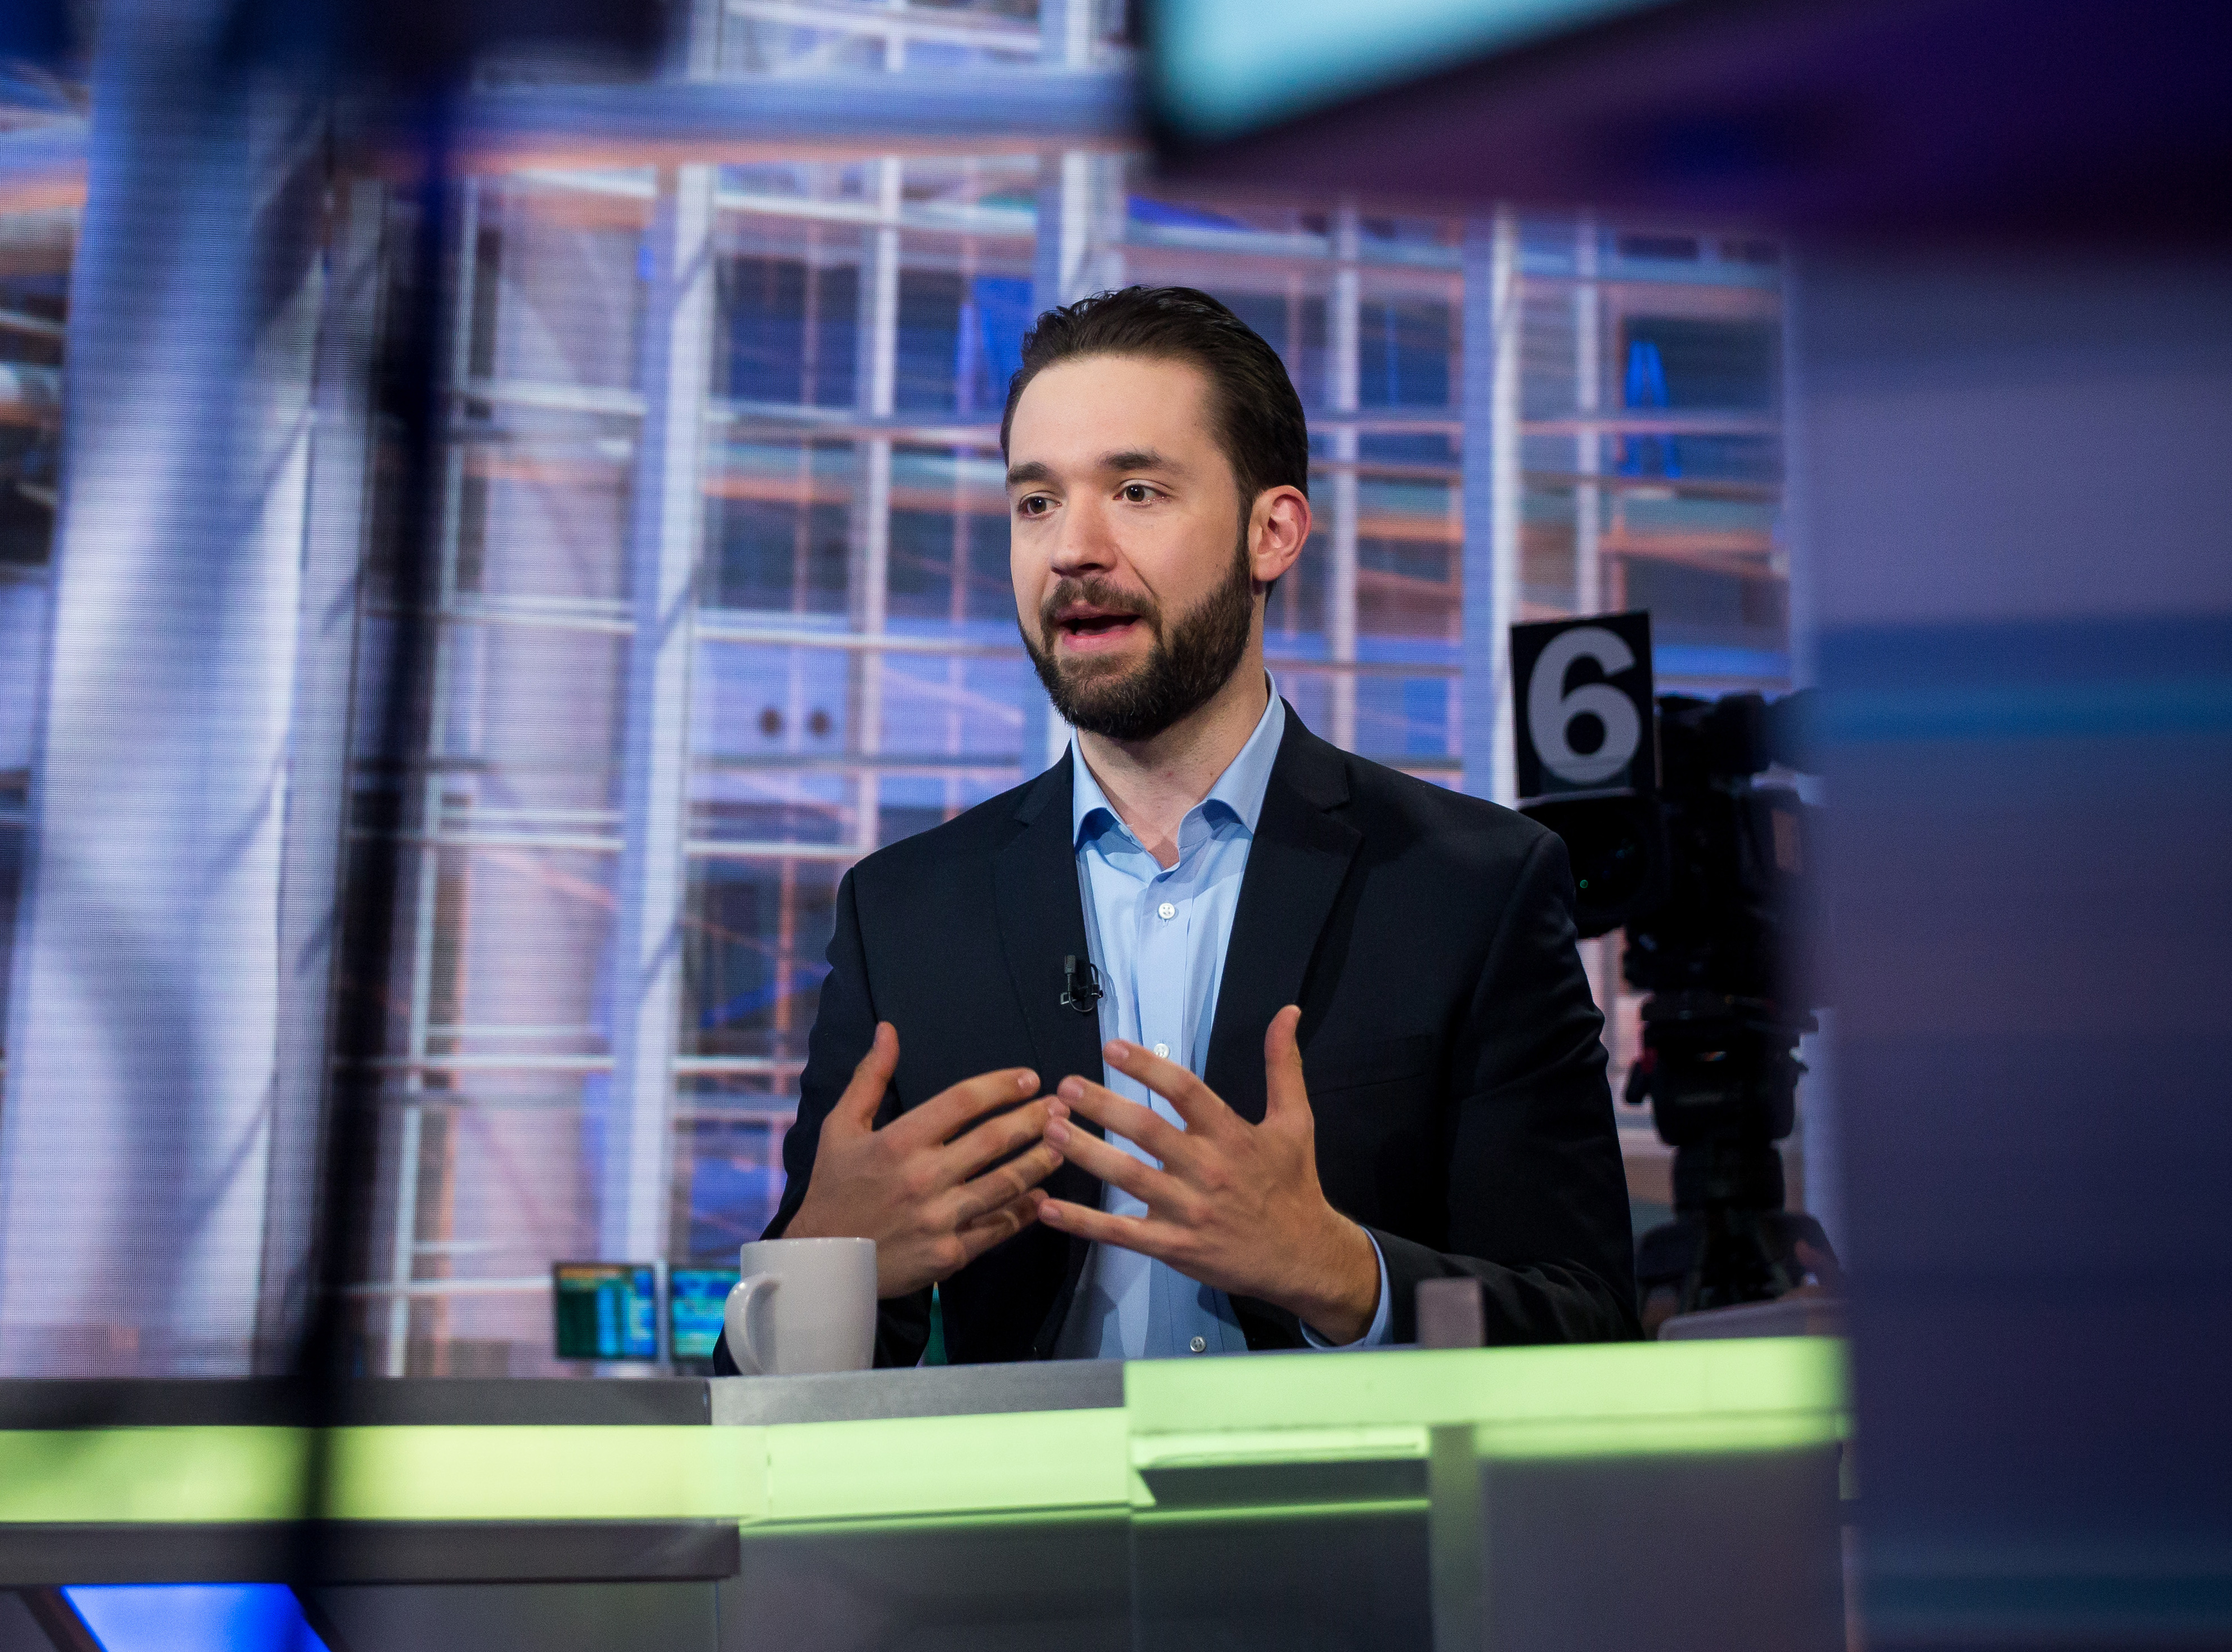 Reddit Inc. Chairman & Co-Founder Alexis Ohanian Interview